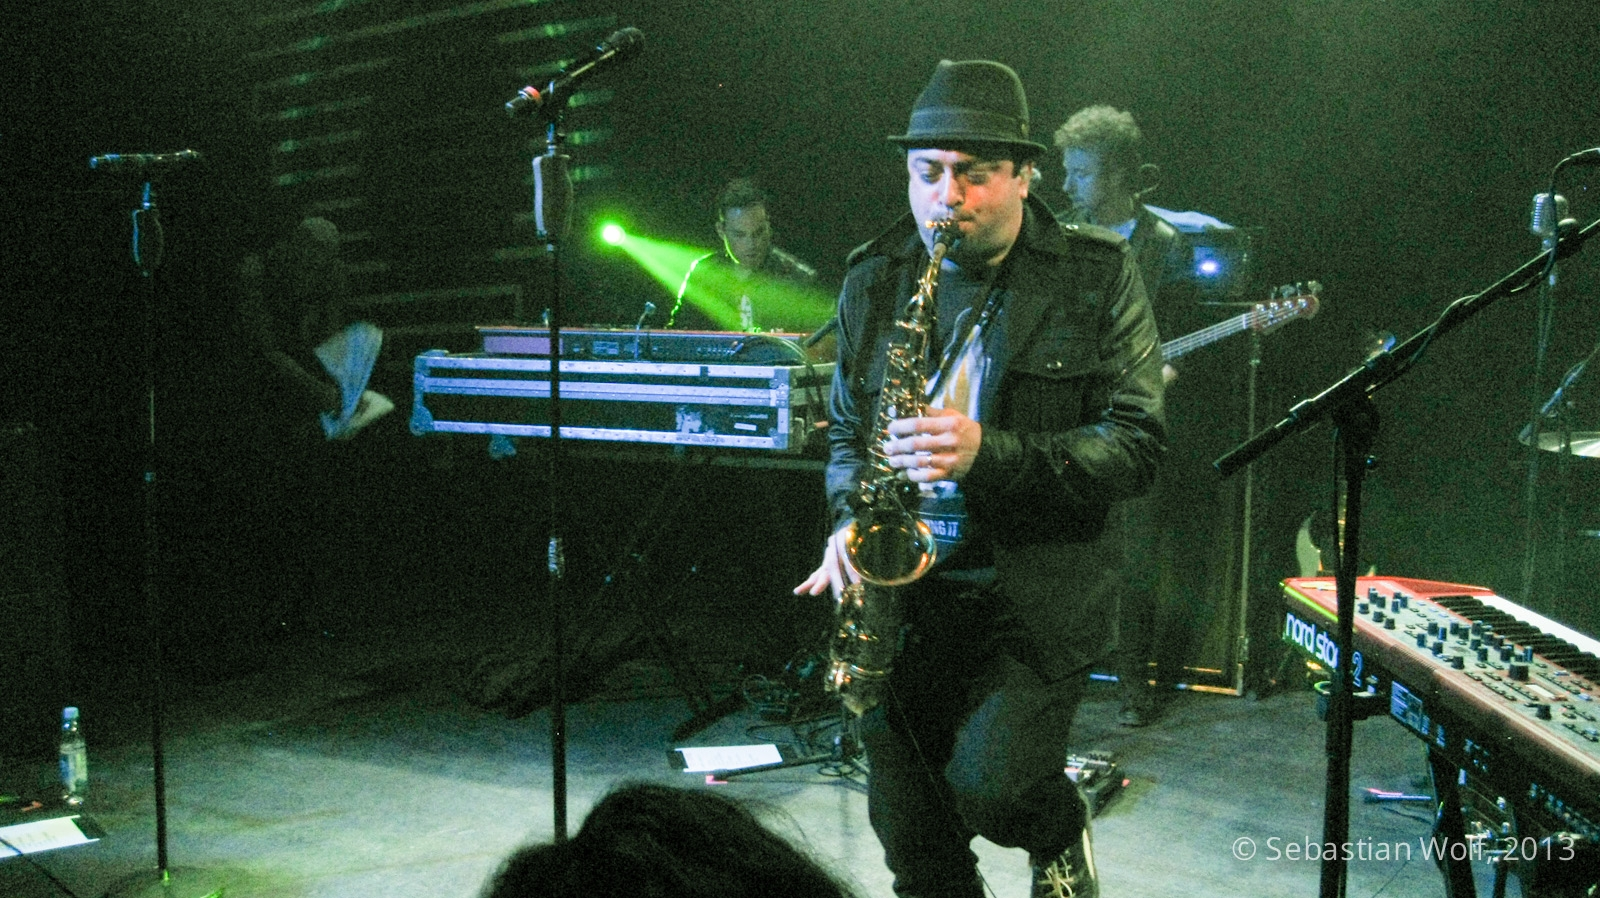 James King playing Saxophone